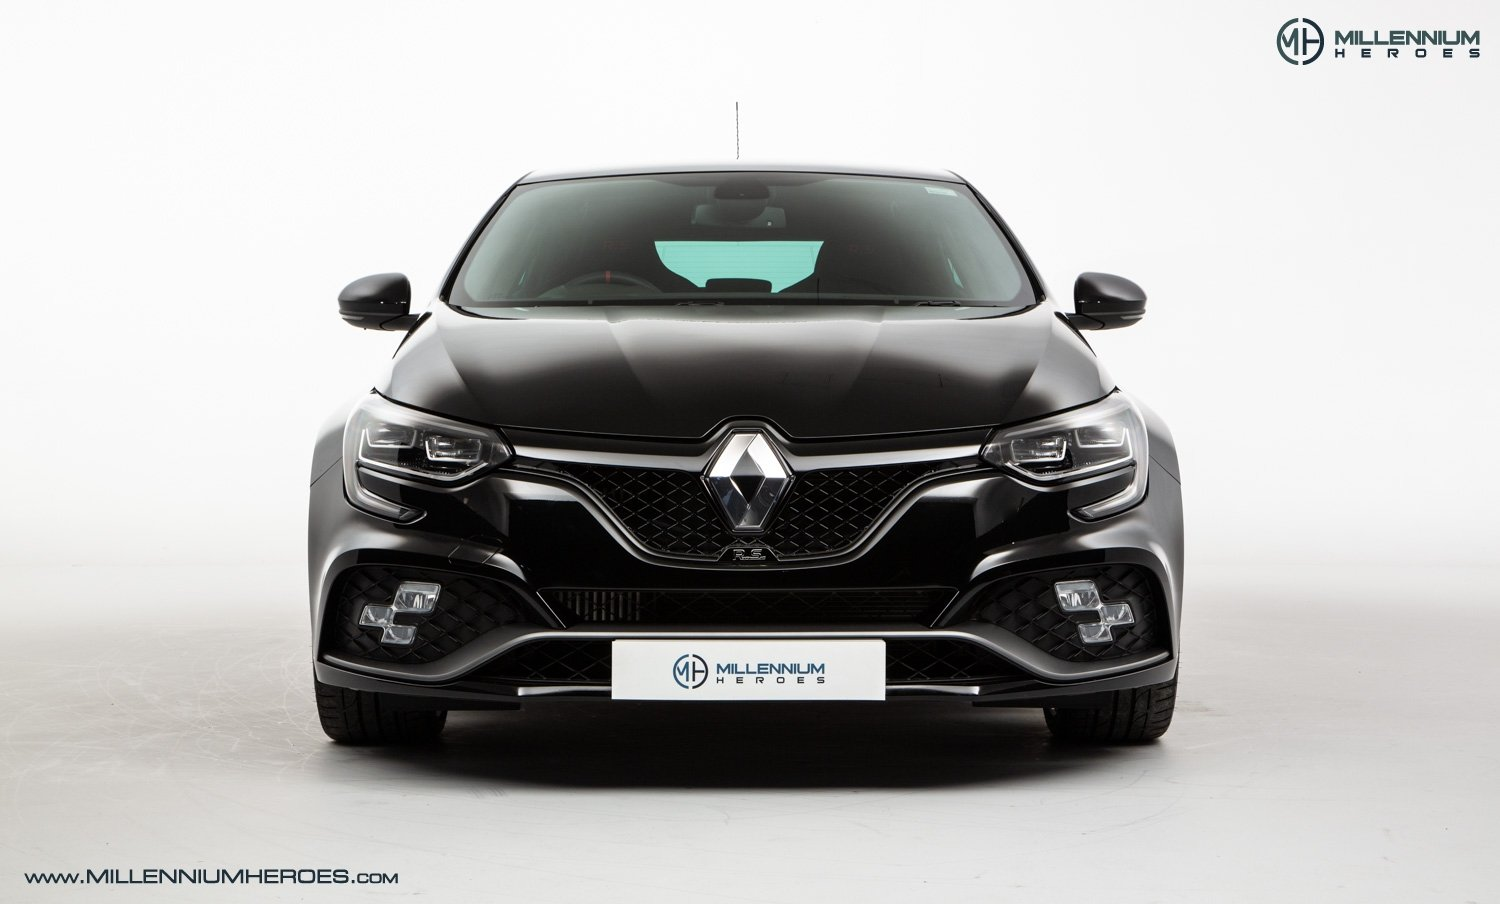 2019 RENAULT MEGANE R.S.280  For Sale (picture 2 of 16)